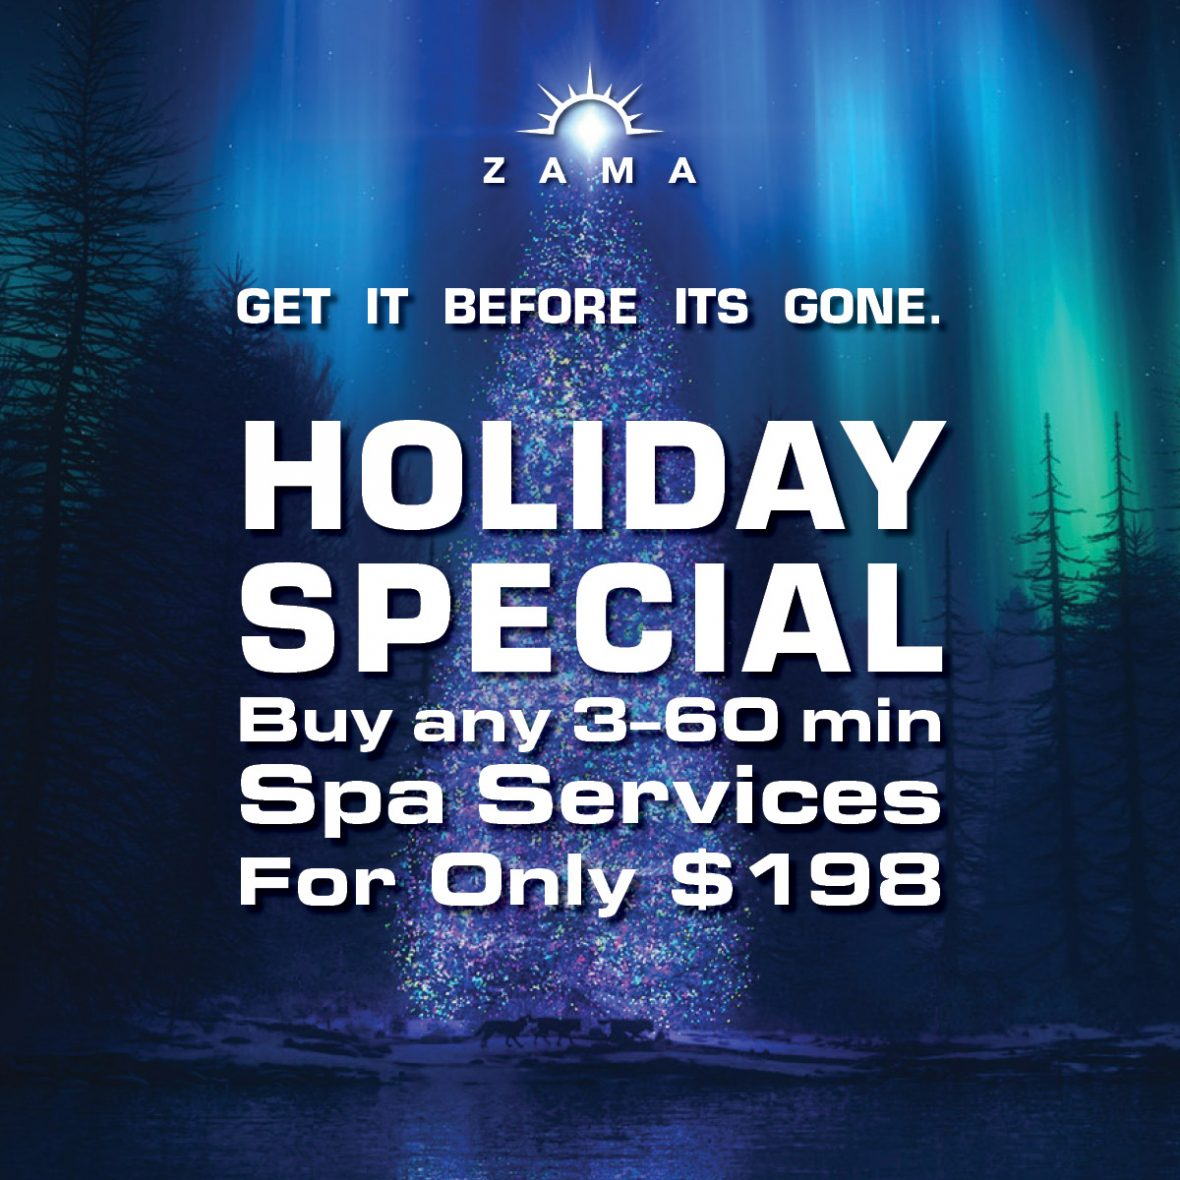 Treat Yourself to Some Holiday Cheer at Zama!